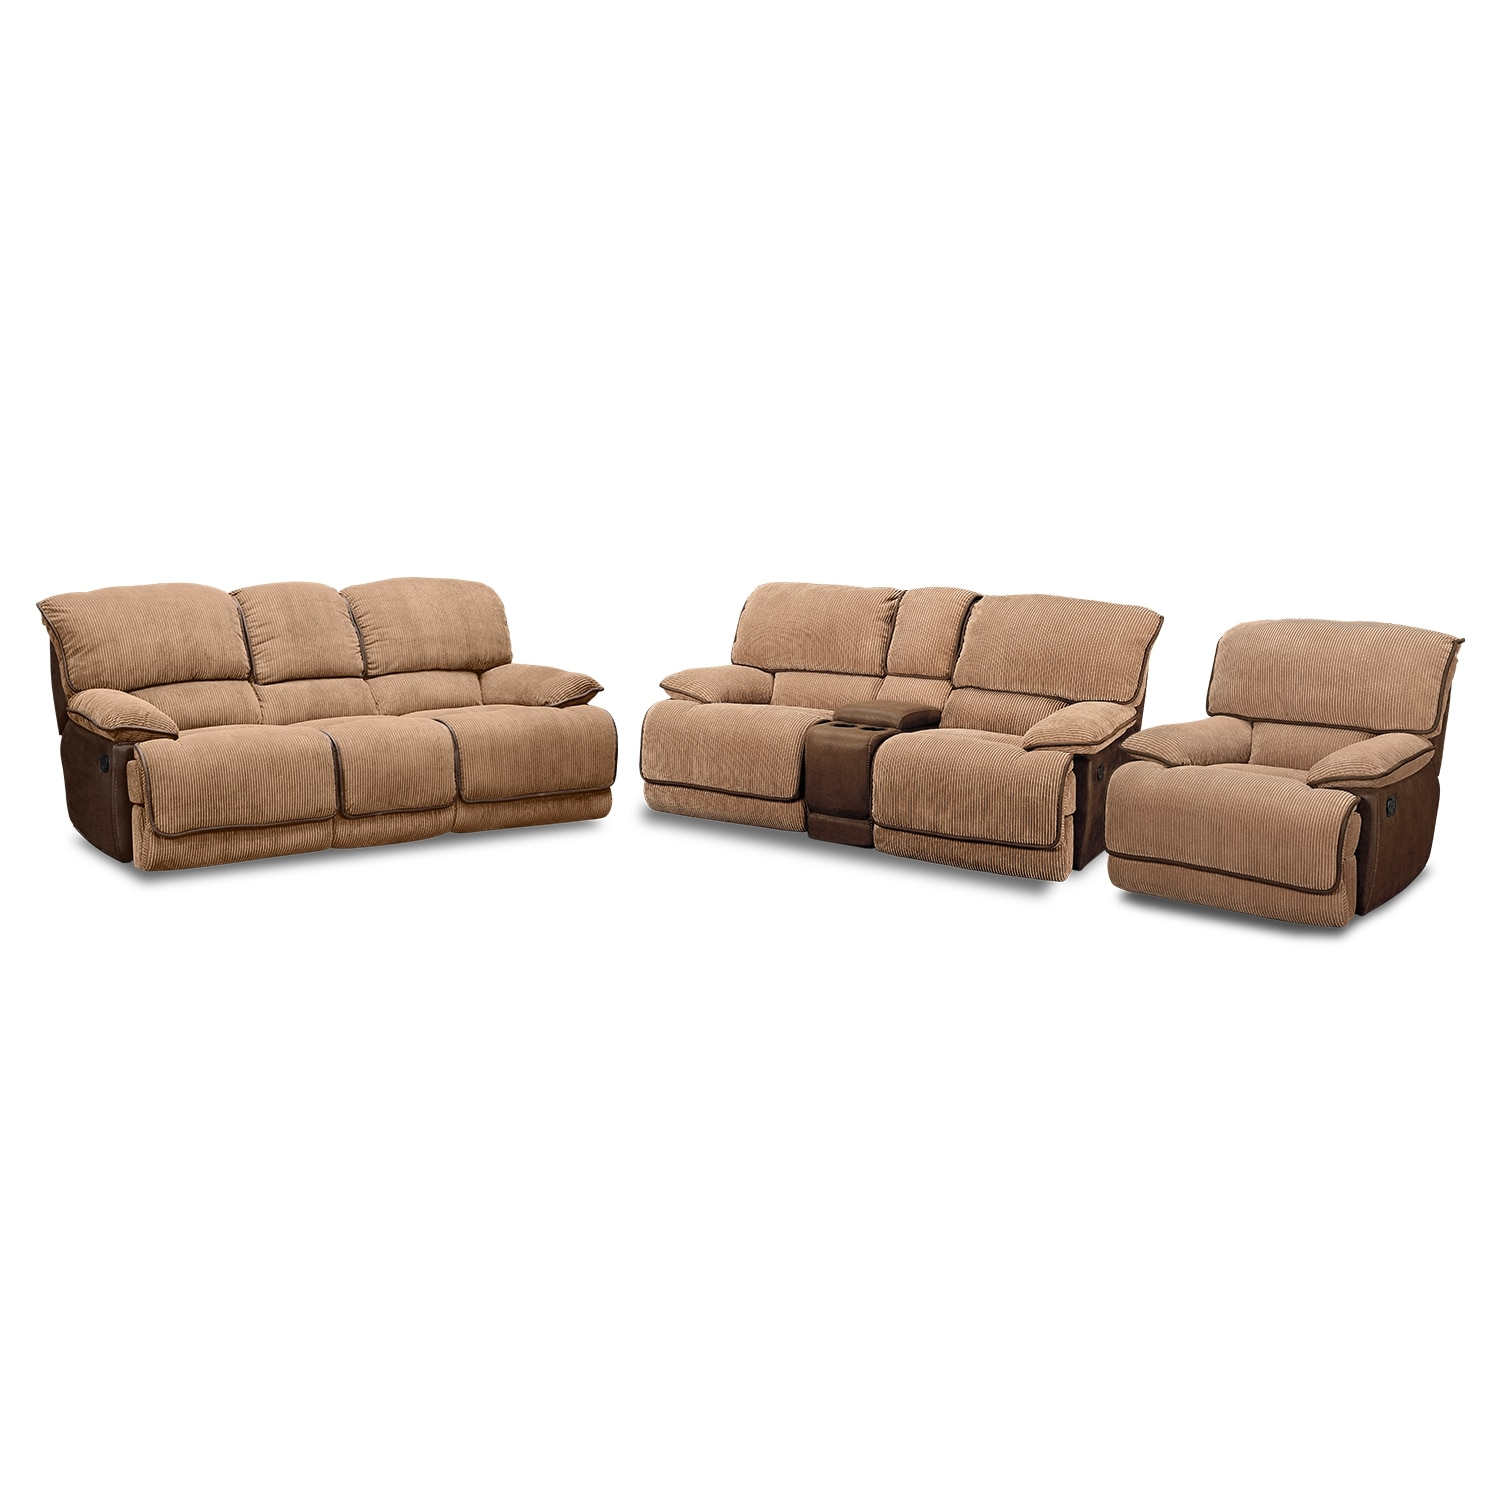 Laguna Reclining Sofa Loveseat And Glider Recliner Set Camel American Signature Furniture